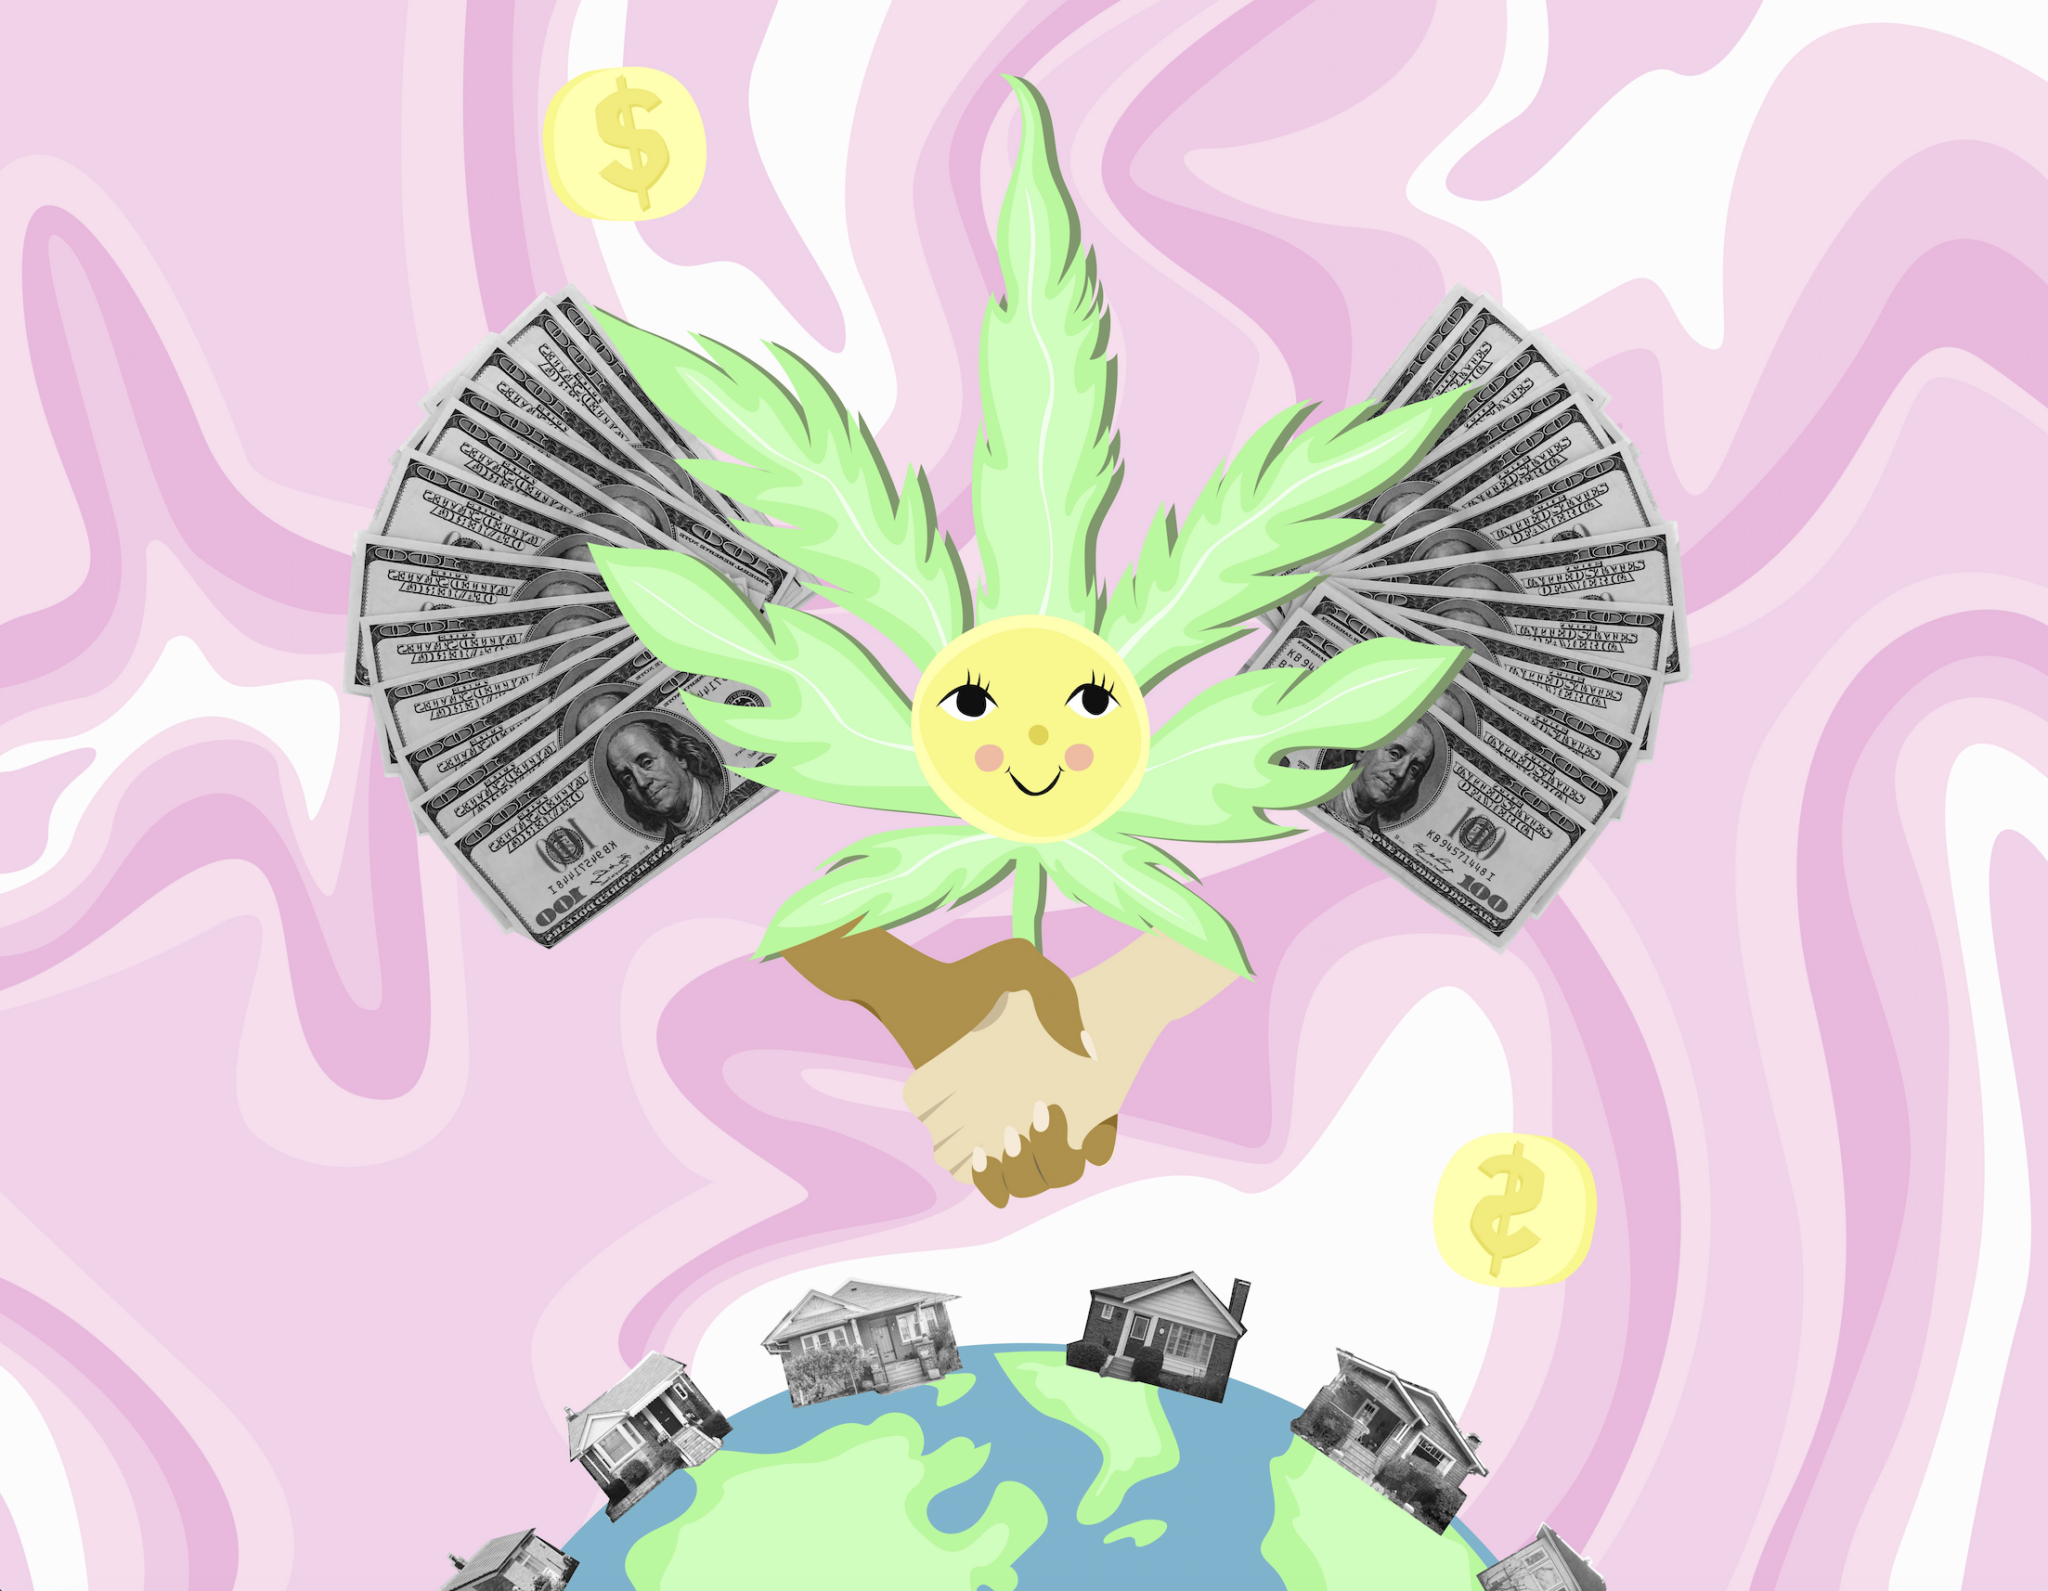 Illustration of a marijuana leaf with a smiley face in the center, surrounded by two hands shaking and photographs of $100 bills. At the bottom, photographs of houses line the Earth.